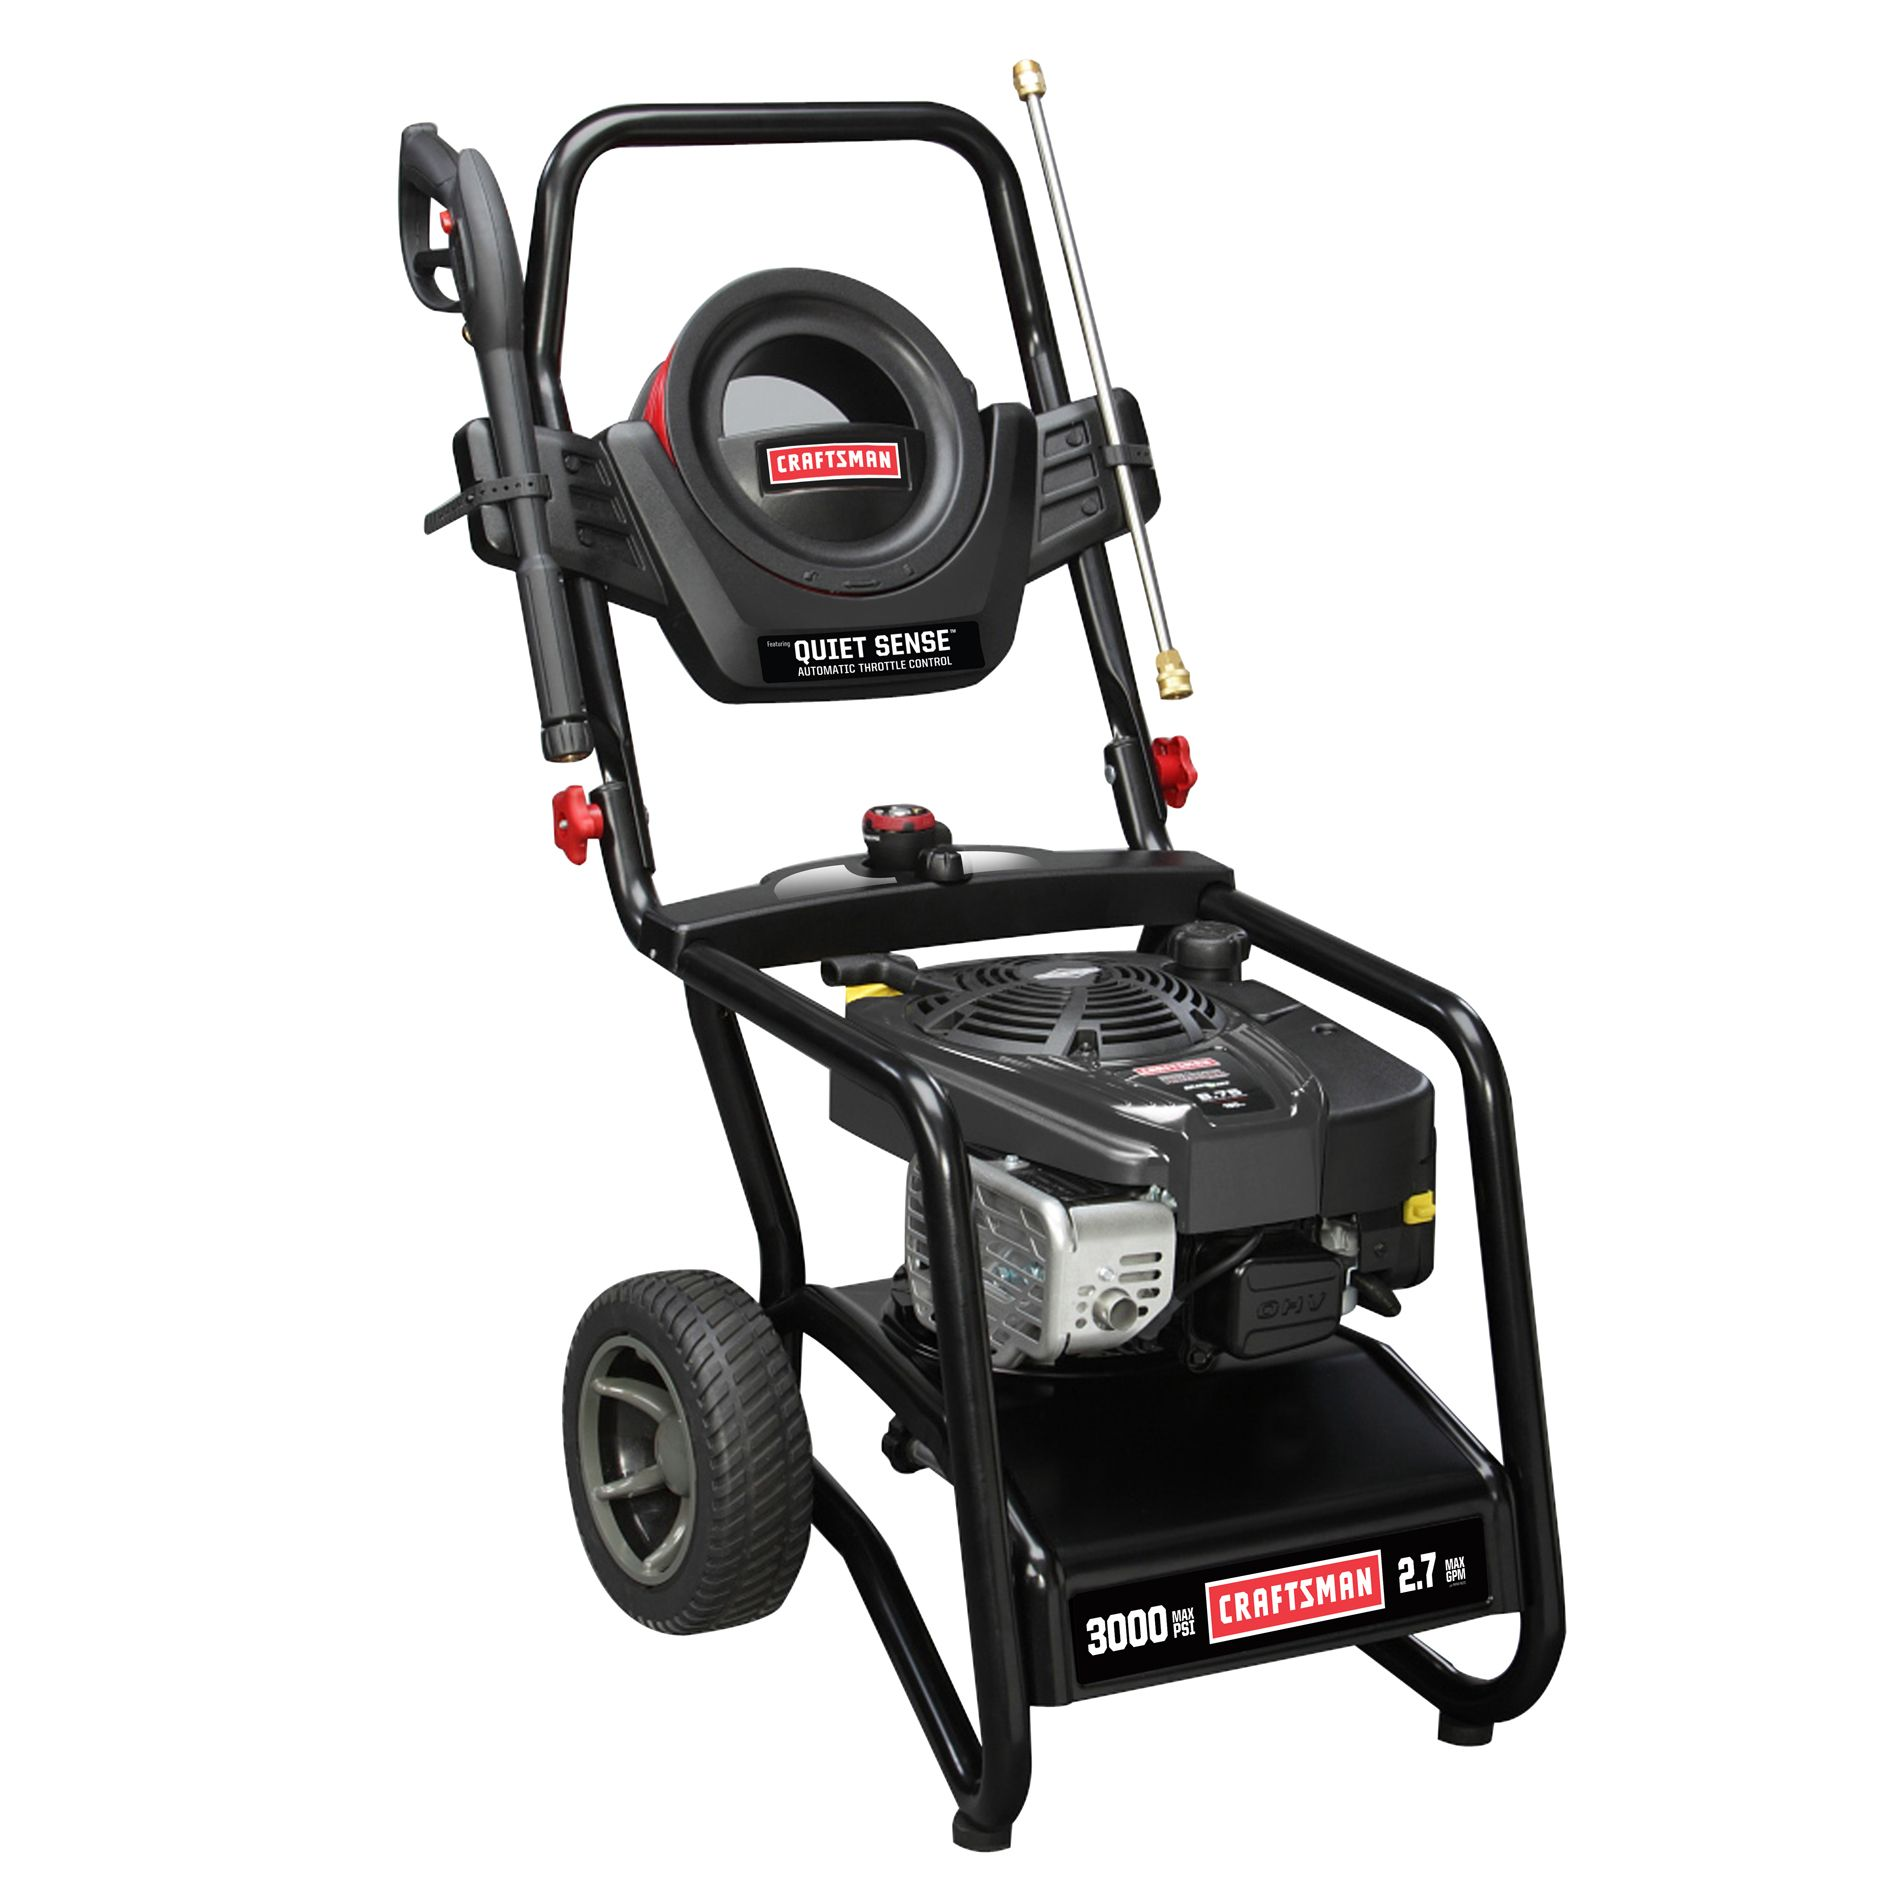 Pressure-Washer-3000-PSI-2-7-GPM-Briggs-Stratton-Featuring-Quiet-Sense-Automatic-Throttle-Control-50-State